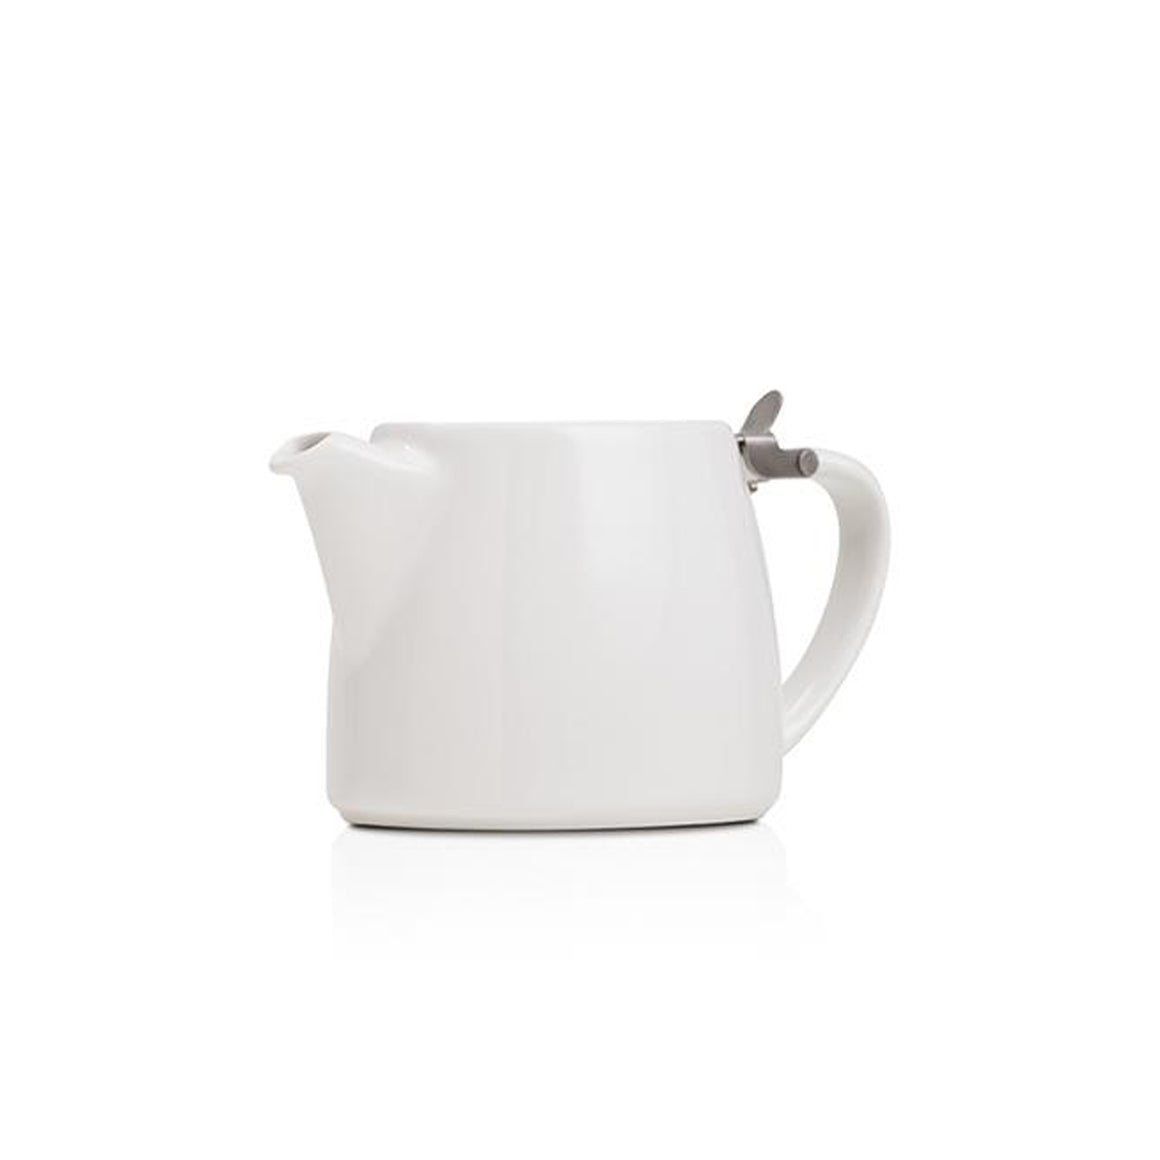 Forlife White Stump Teapot 18oz